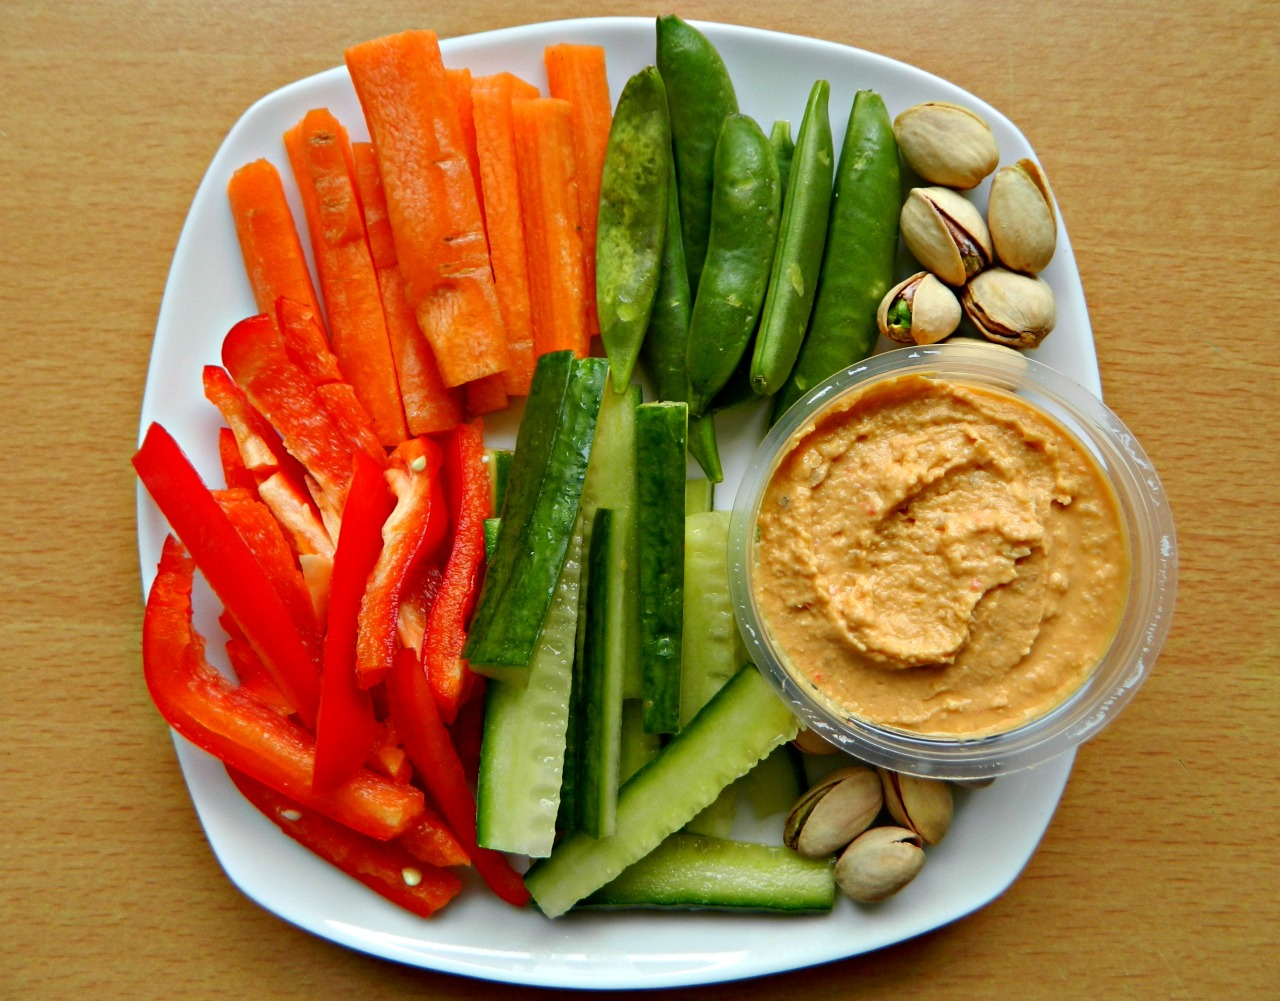 Carrot sticks, sugarsnap peas, red bell pepper, cucumber and red pepper hummus with pistachios.